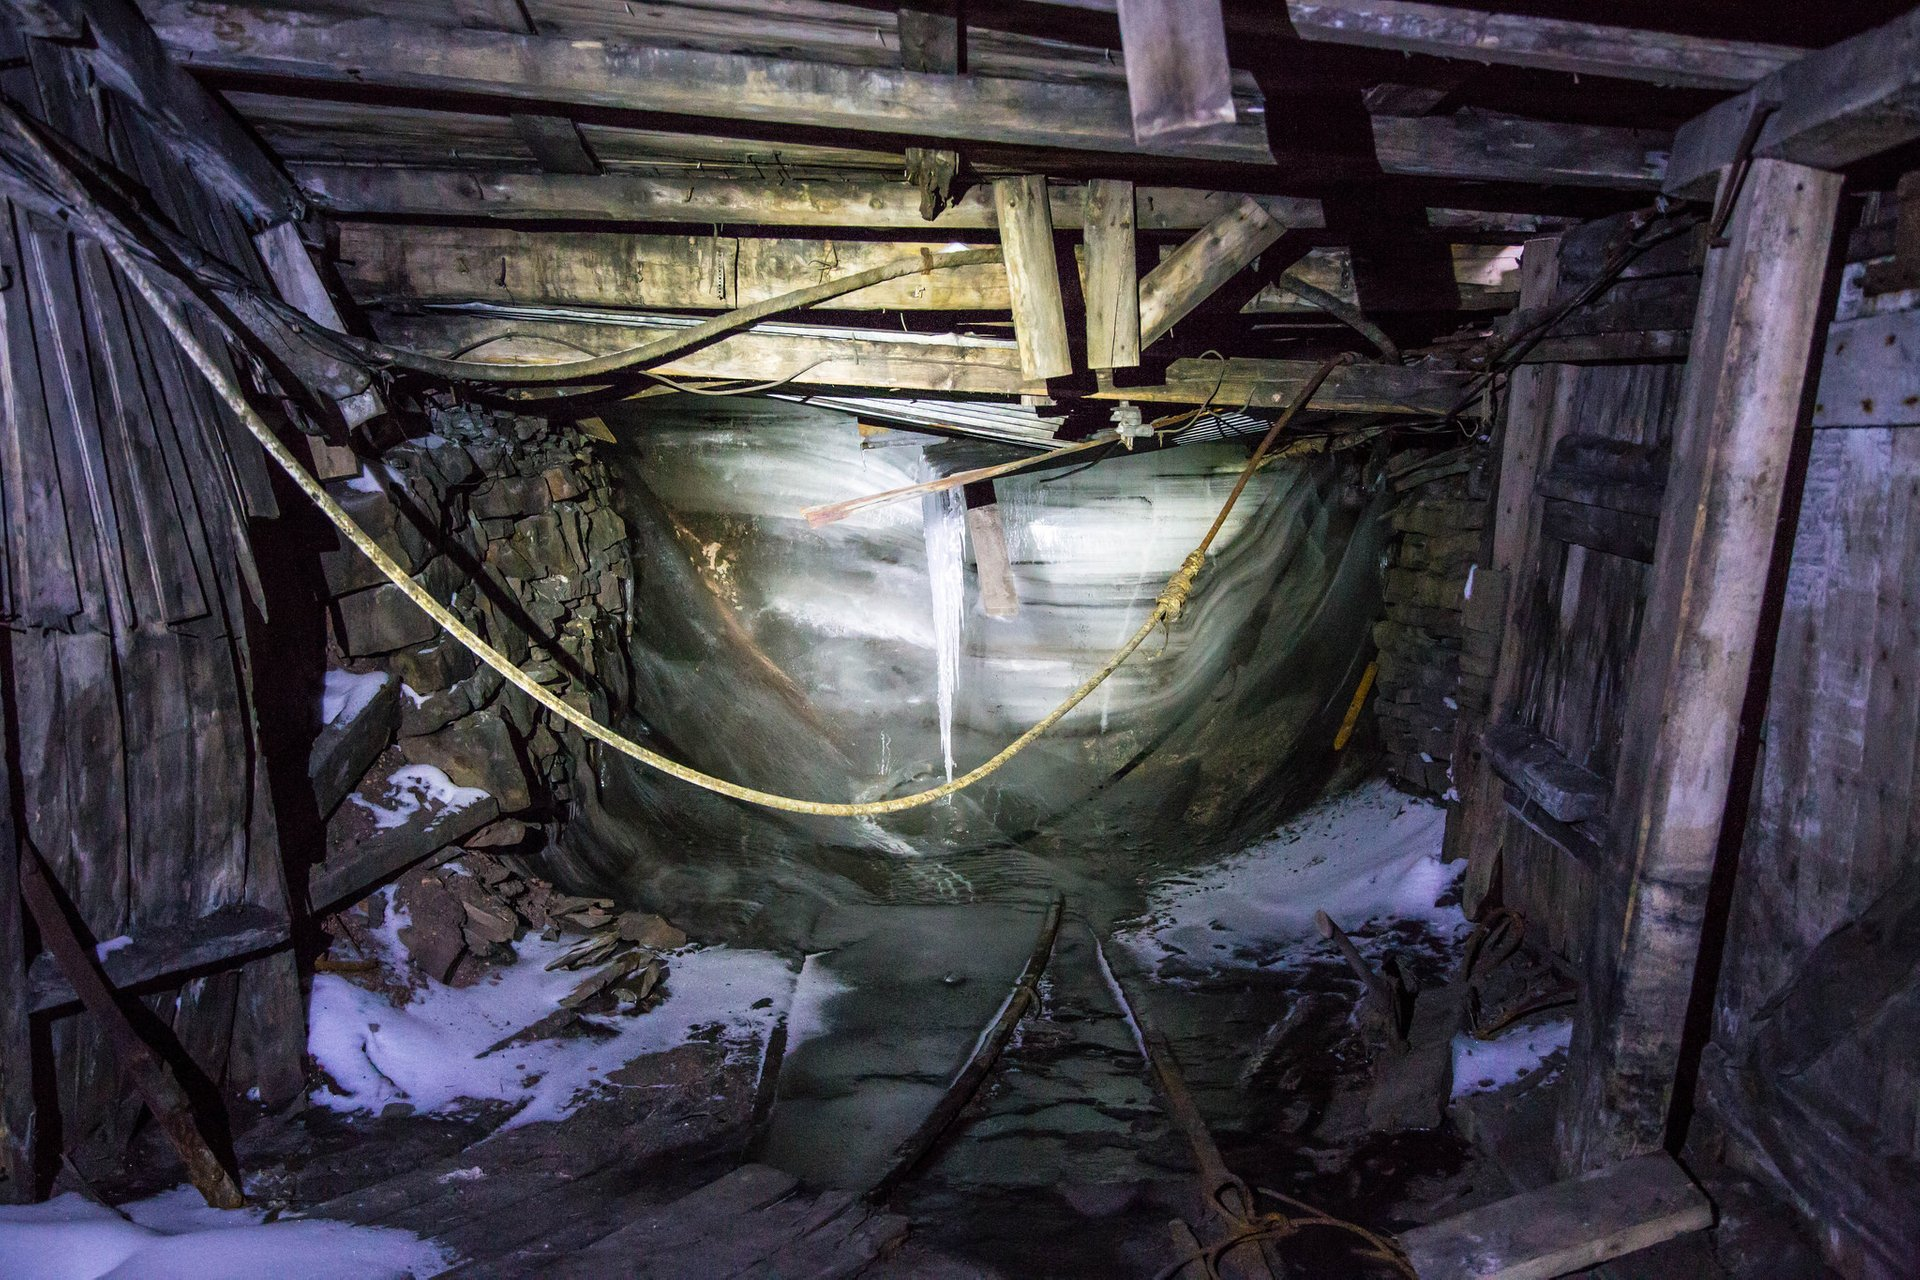 Best time to see Abandoned Coal Mines in Svalbard 2019